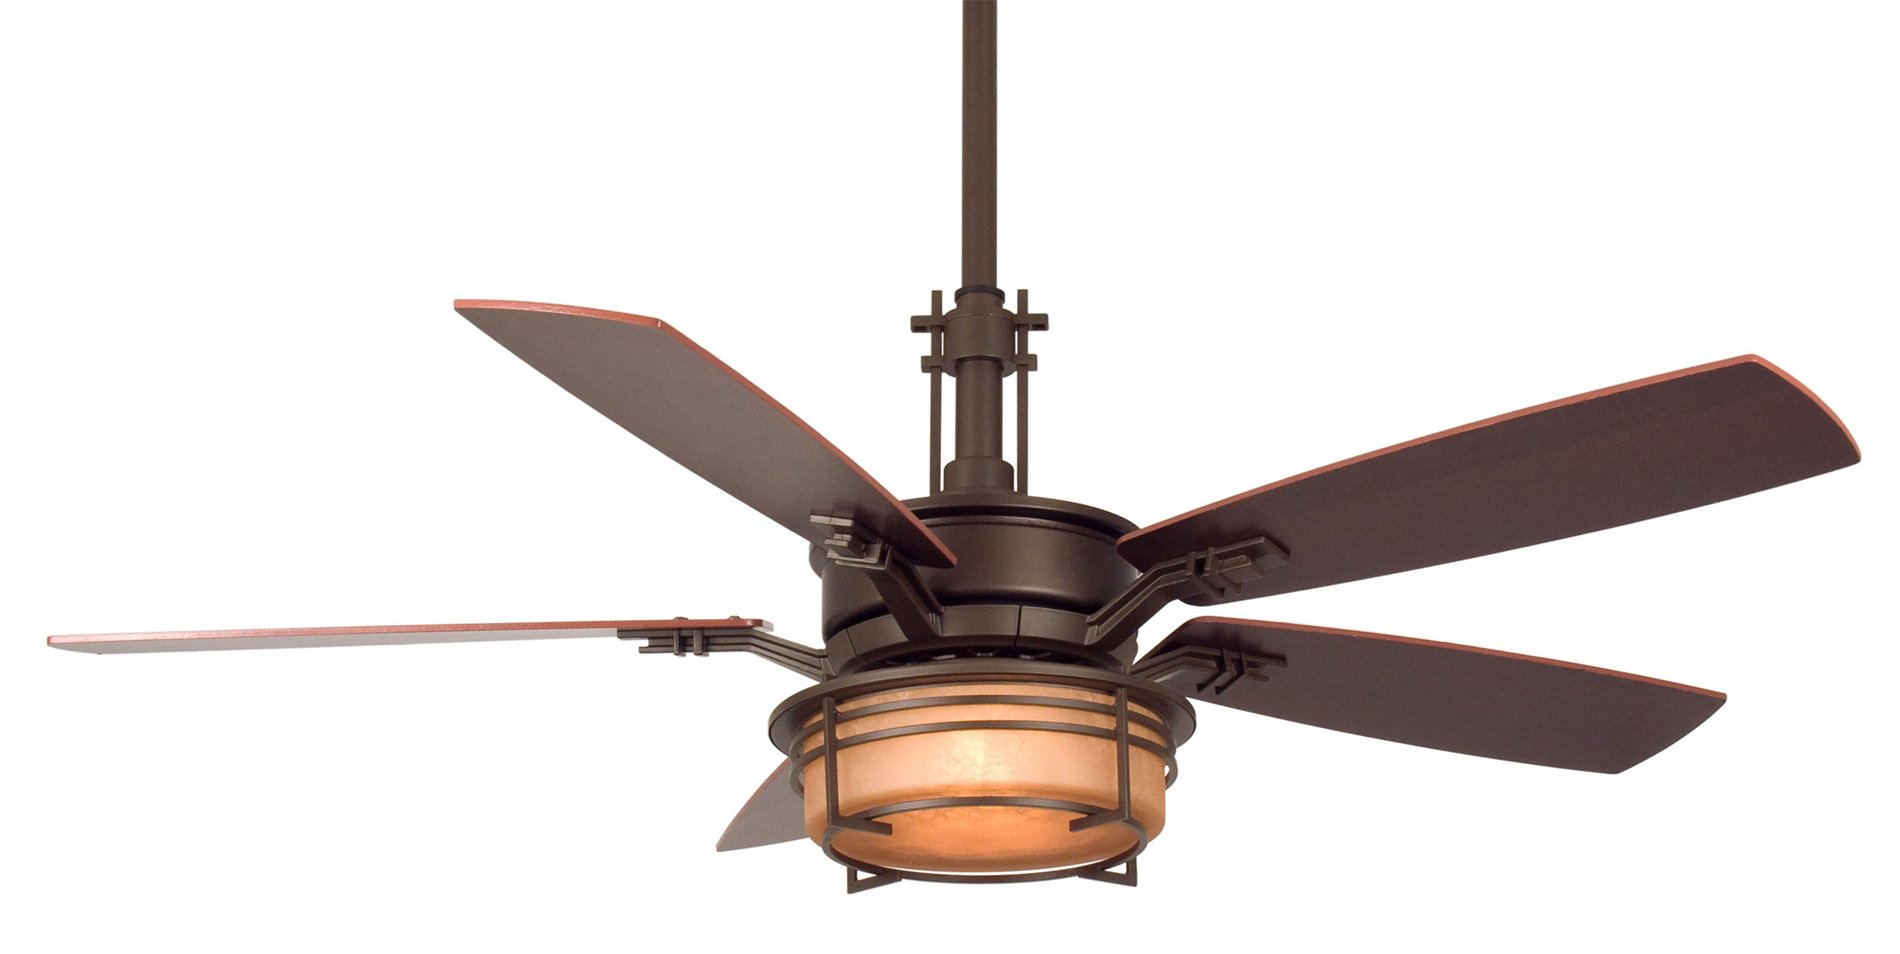 fanimation fp5220 54 andover tropical ceiling fan fm fp5220. Black Bedroom Furniture Sets. Home Design Ideas